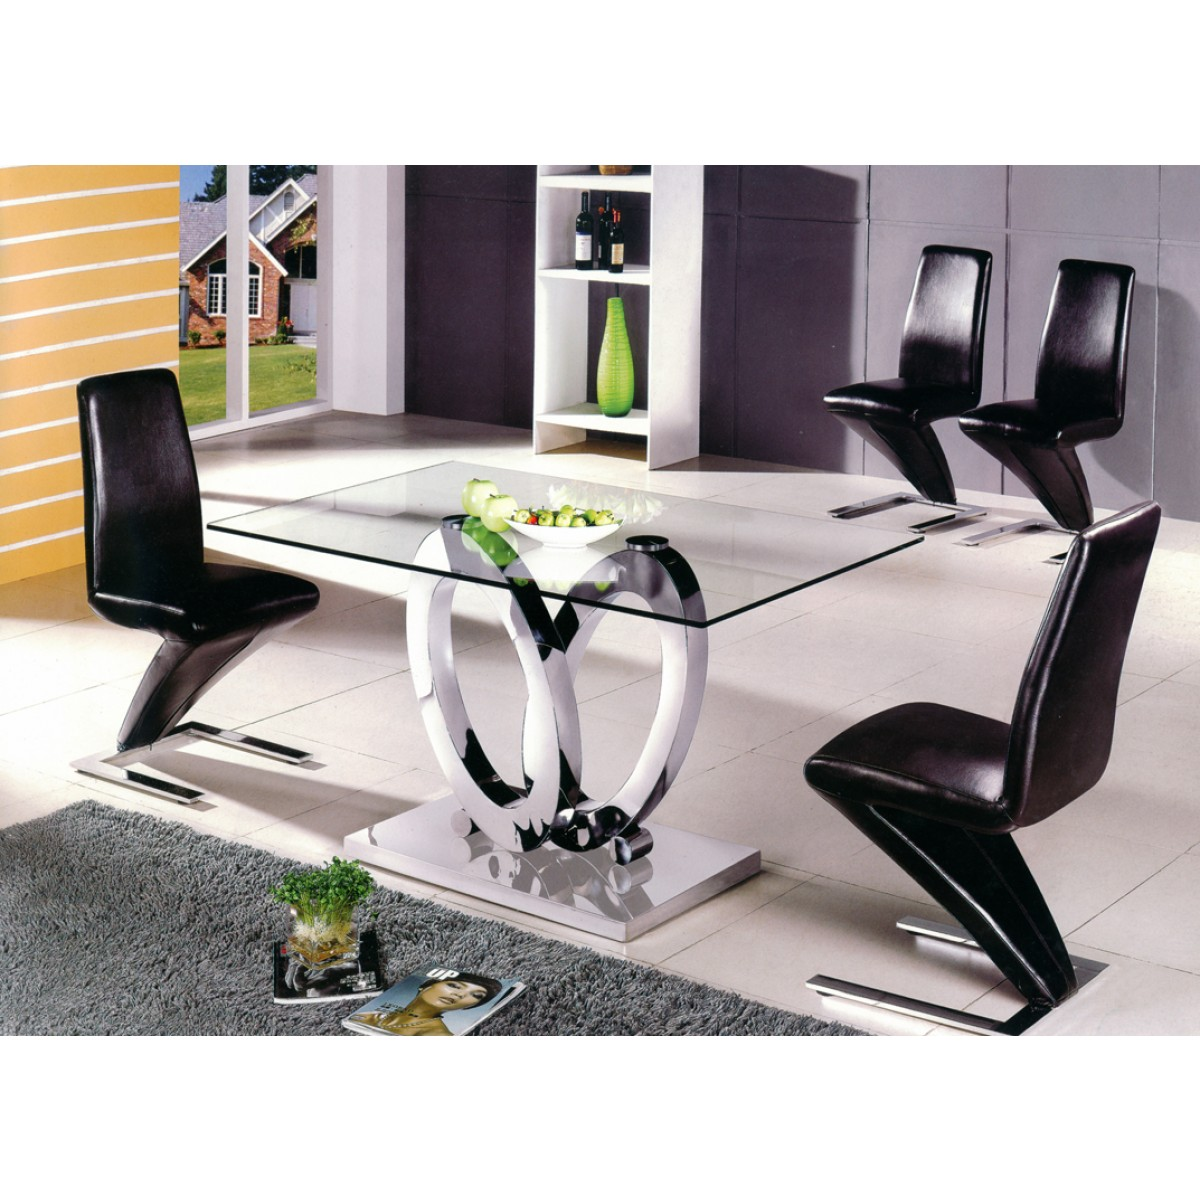 Table manger design ellipse taille au choix tables for Table de salle a manger verte